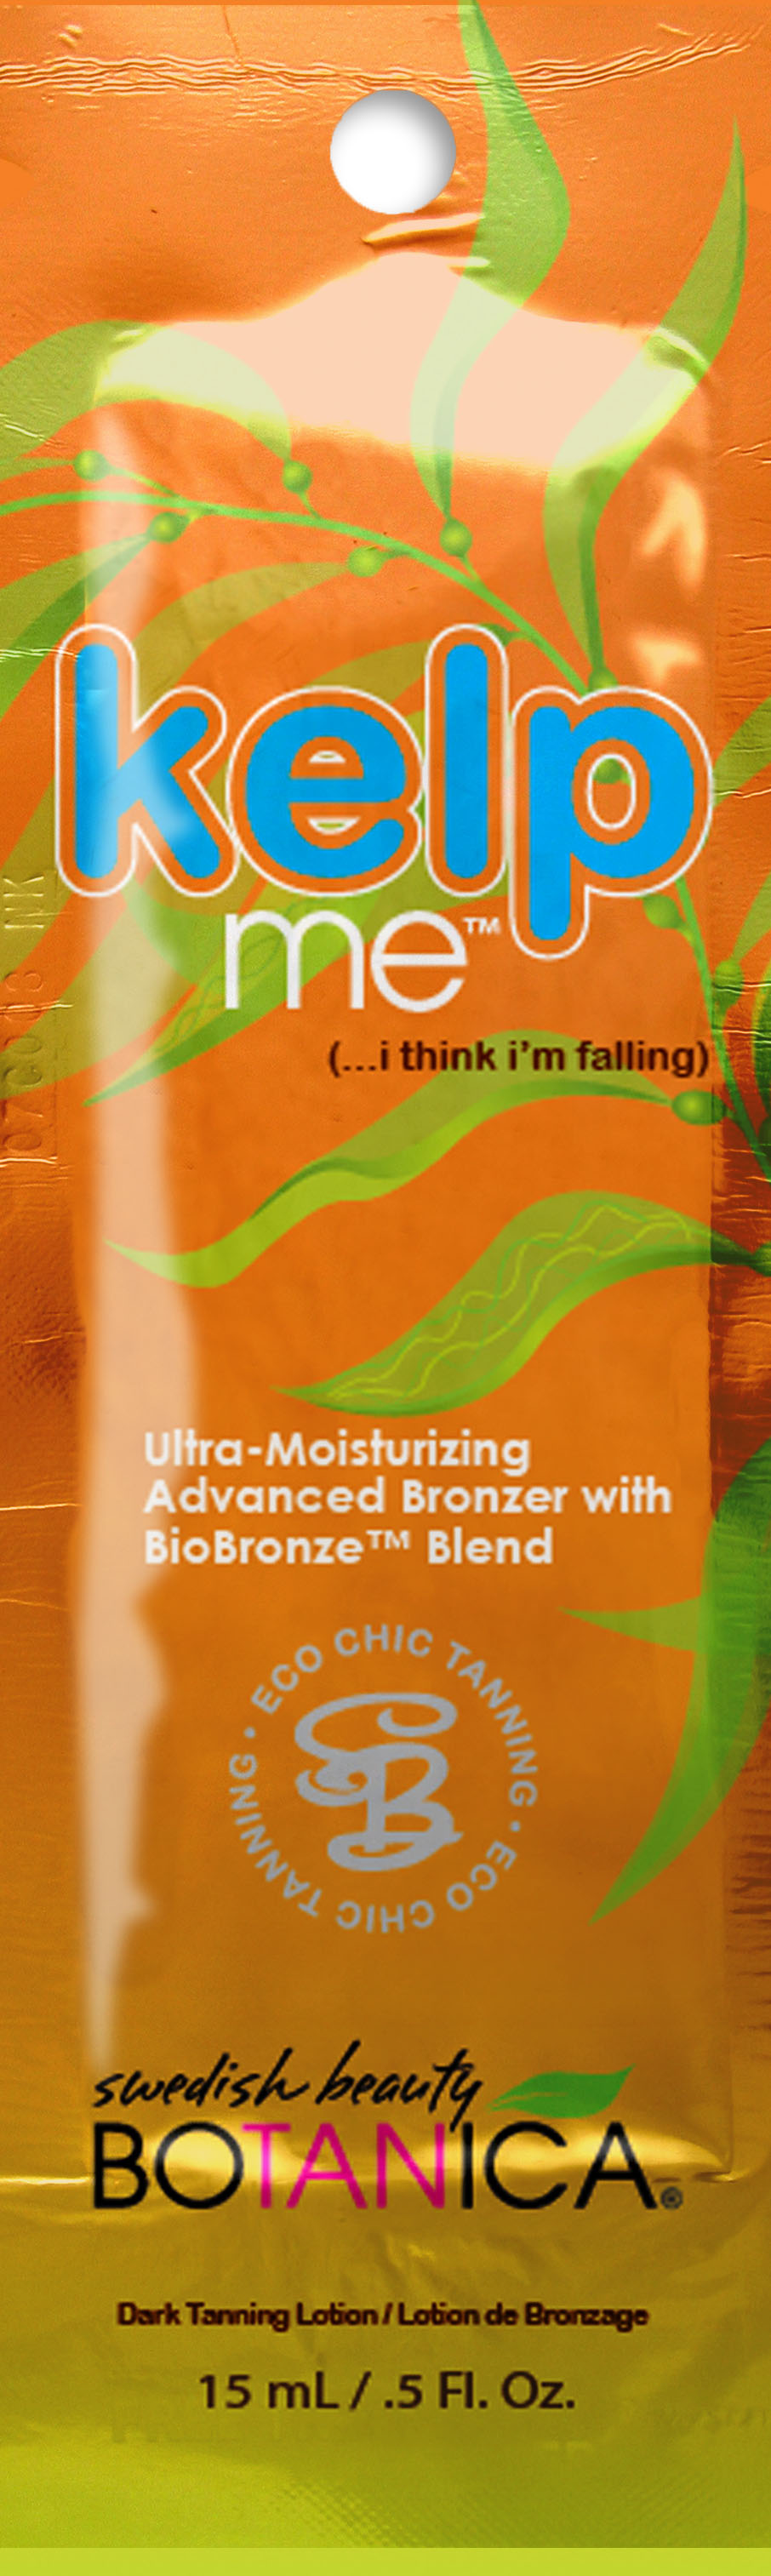 Kelp Me™ Ultra-Moisturizing Advanced Bronzer Pkt